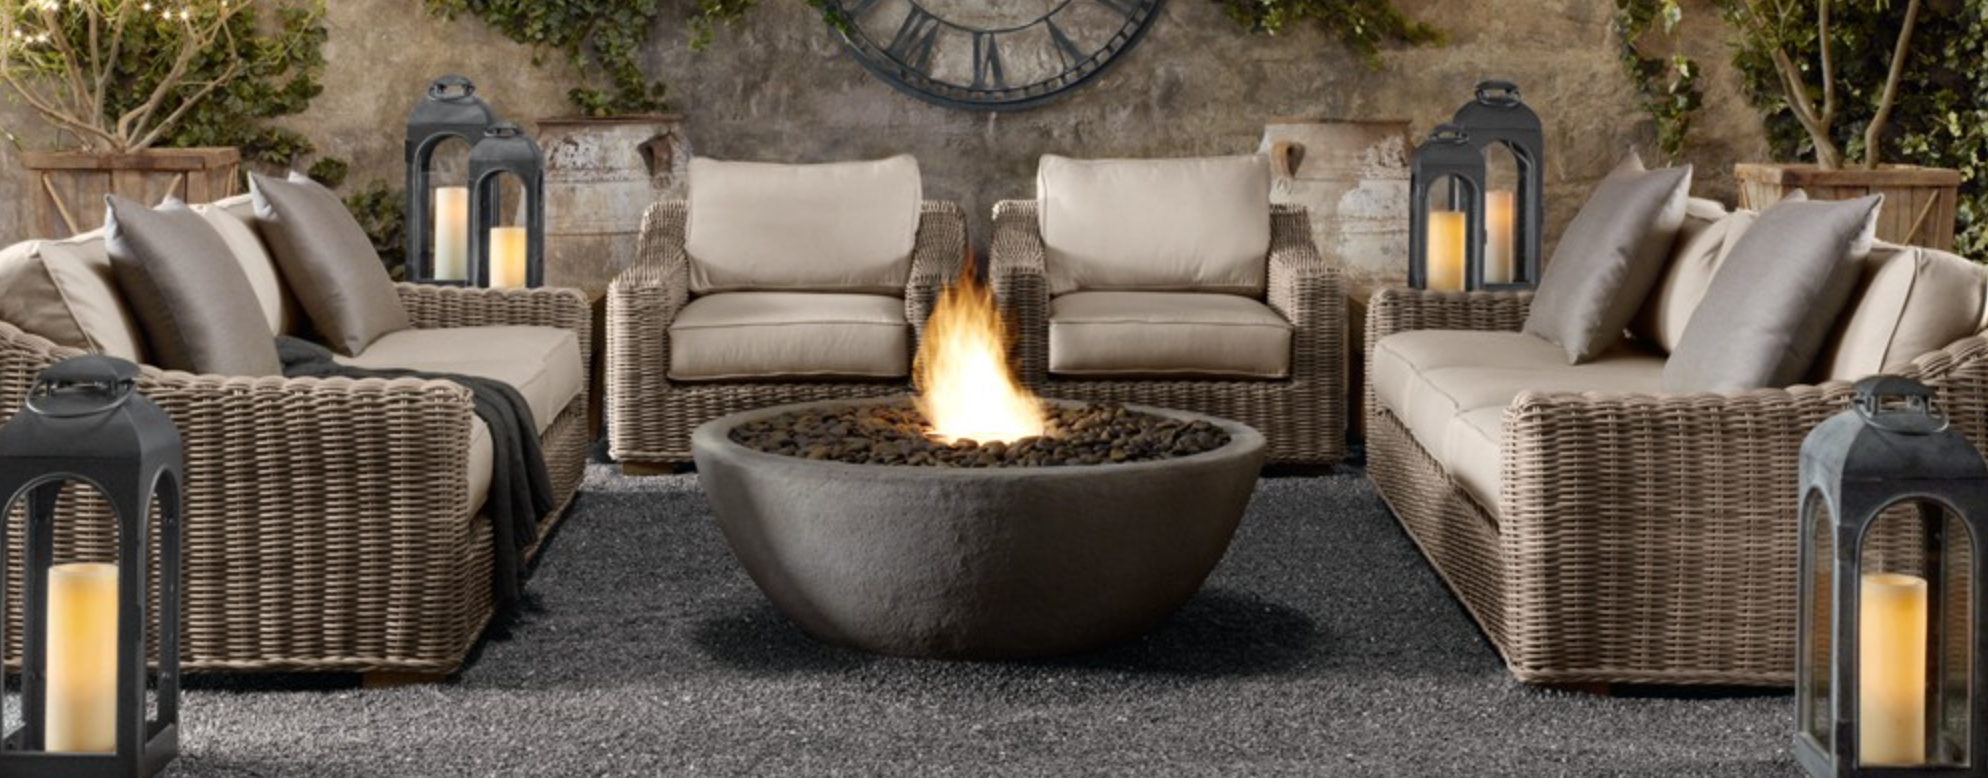 The Provence Collection by Restoration Hardware